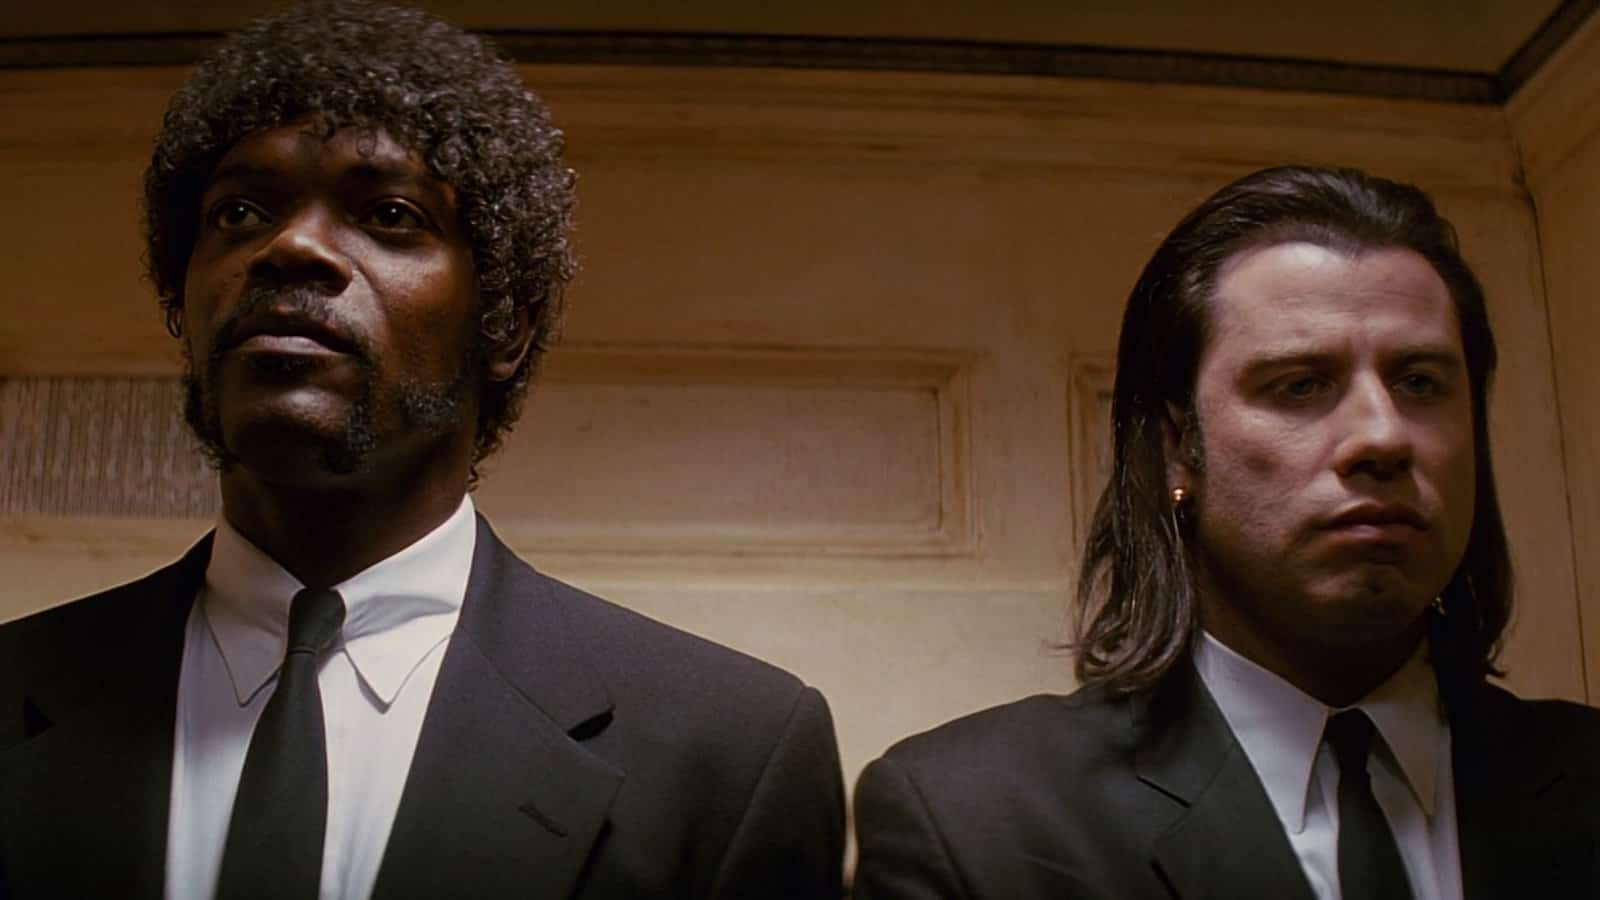 Two Shot - Camera Angles - Pulp Fiction